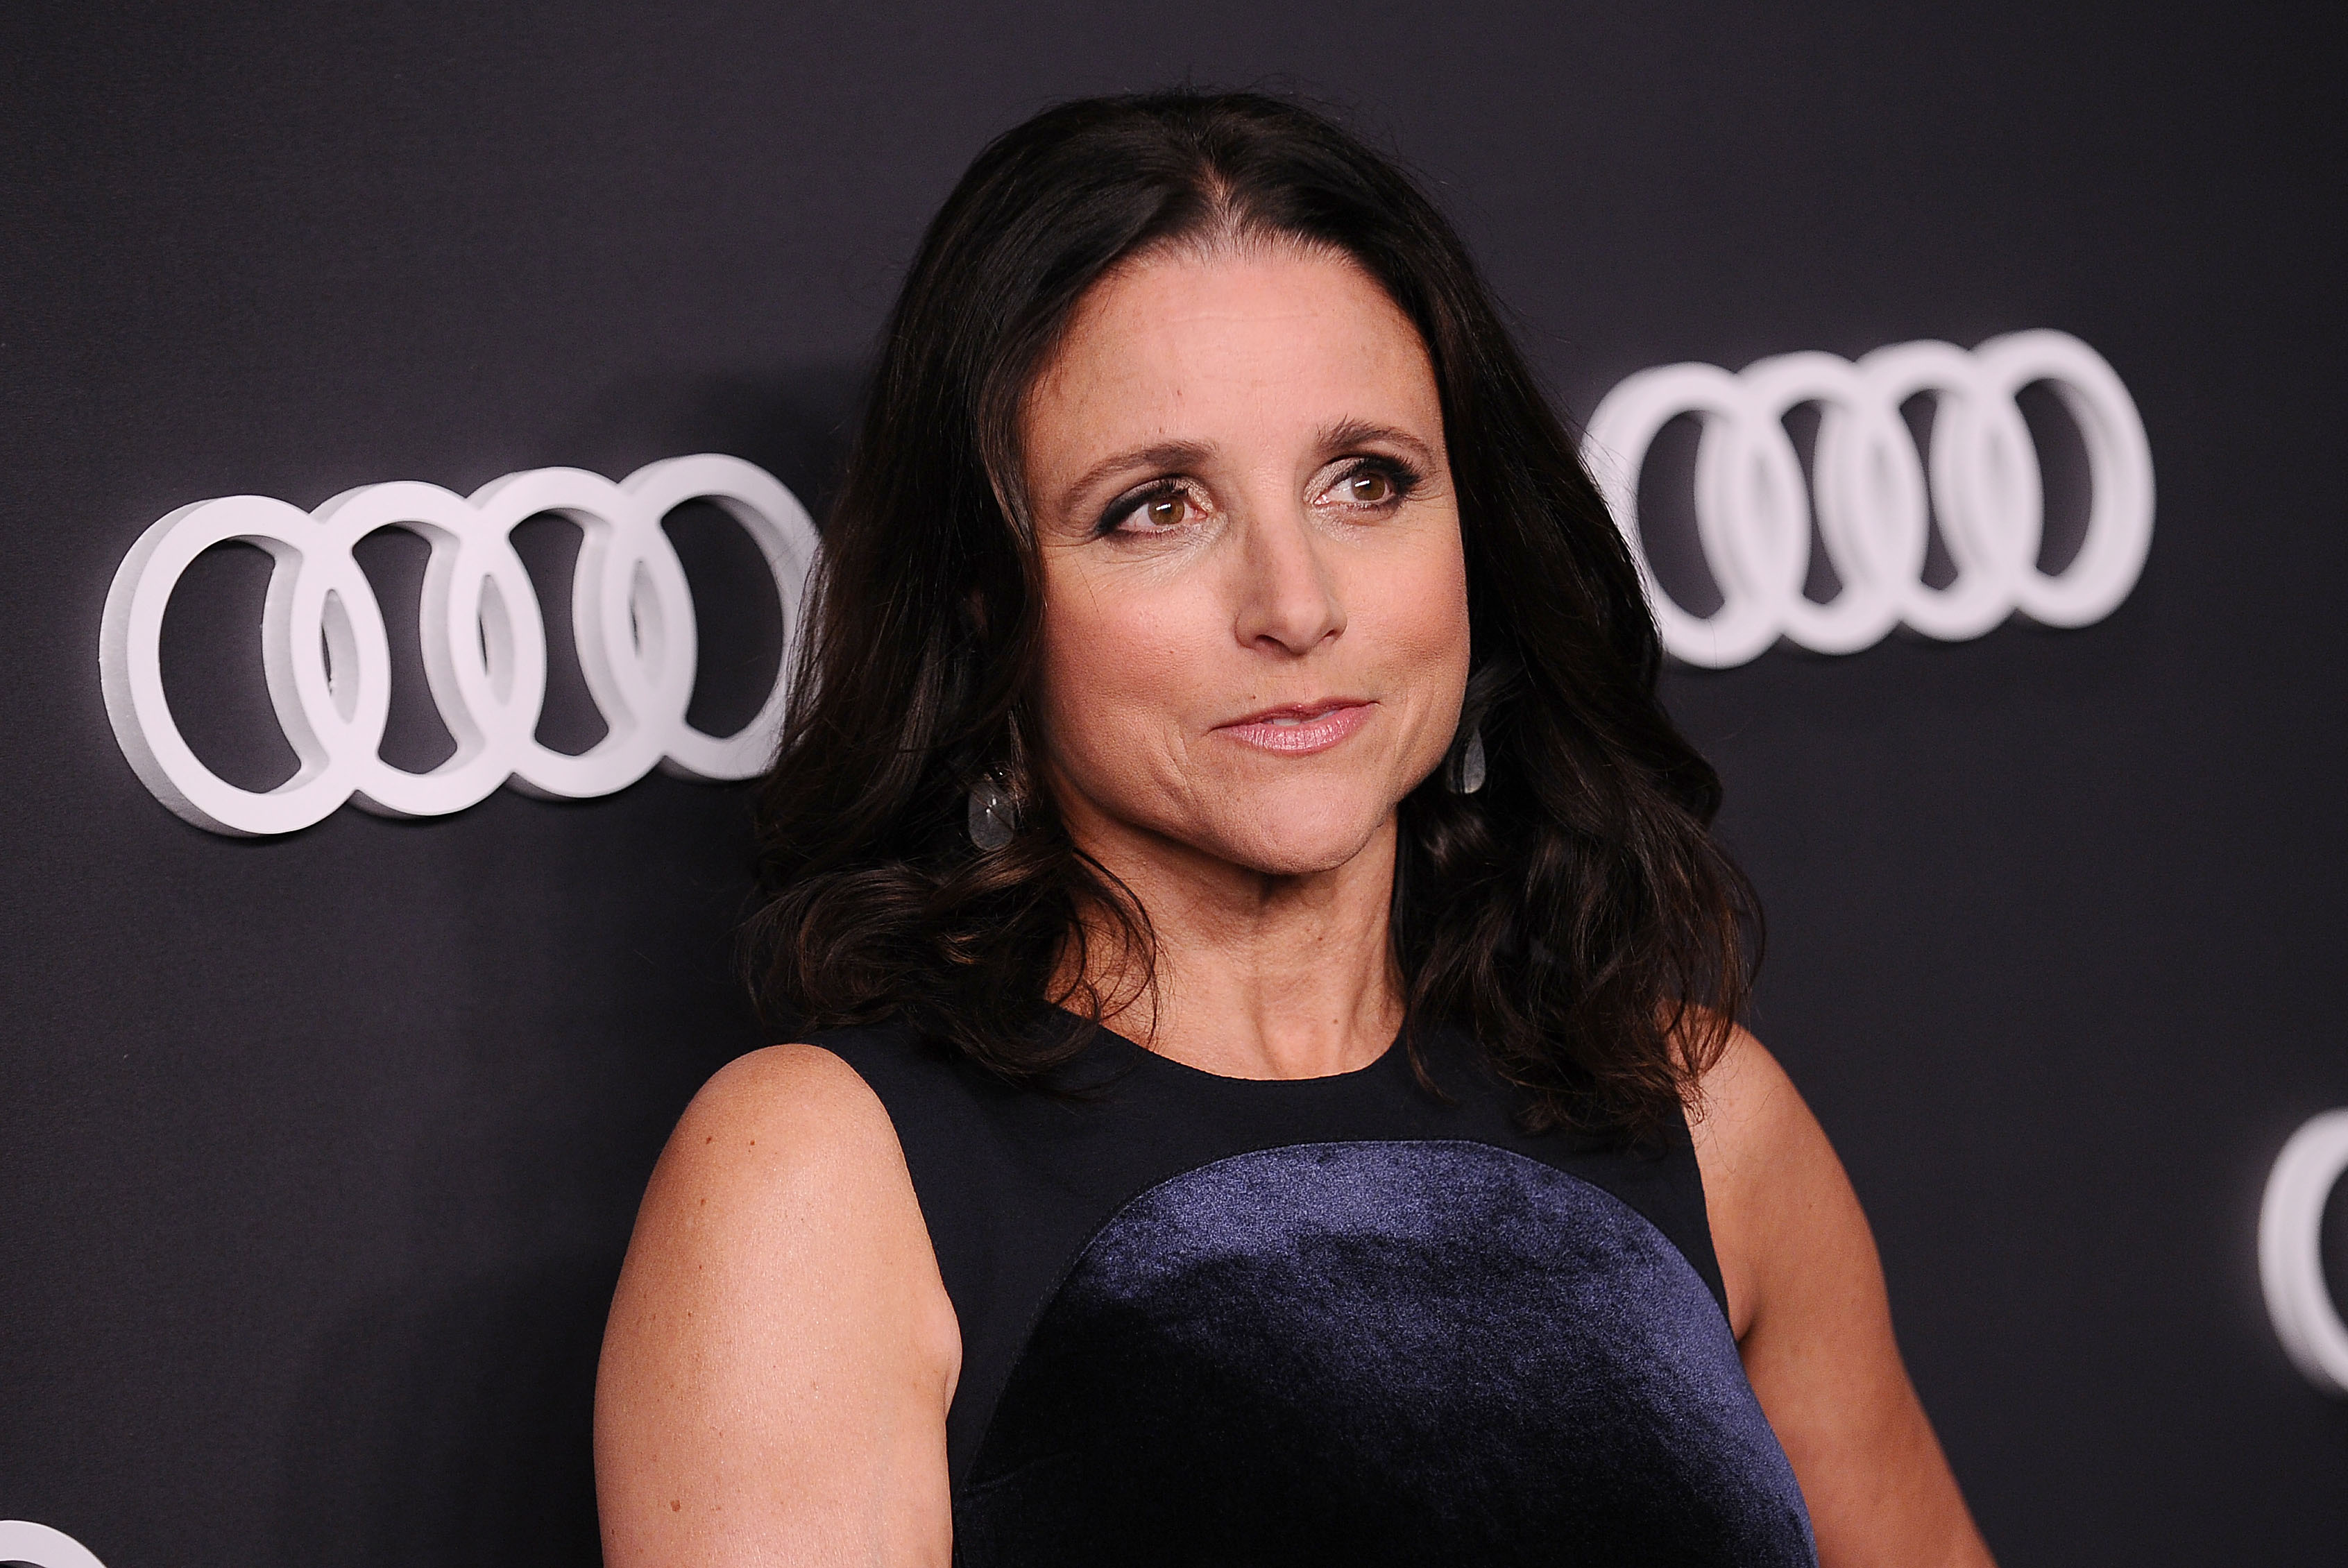 Actress Julia Louis-Dreyfus attends the Audi celebration for the 69th Emmys at The Highlight Room at the Dream Hollywood on September 14, 2017 in Hollywood, California.